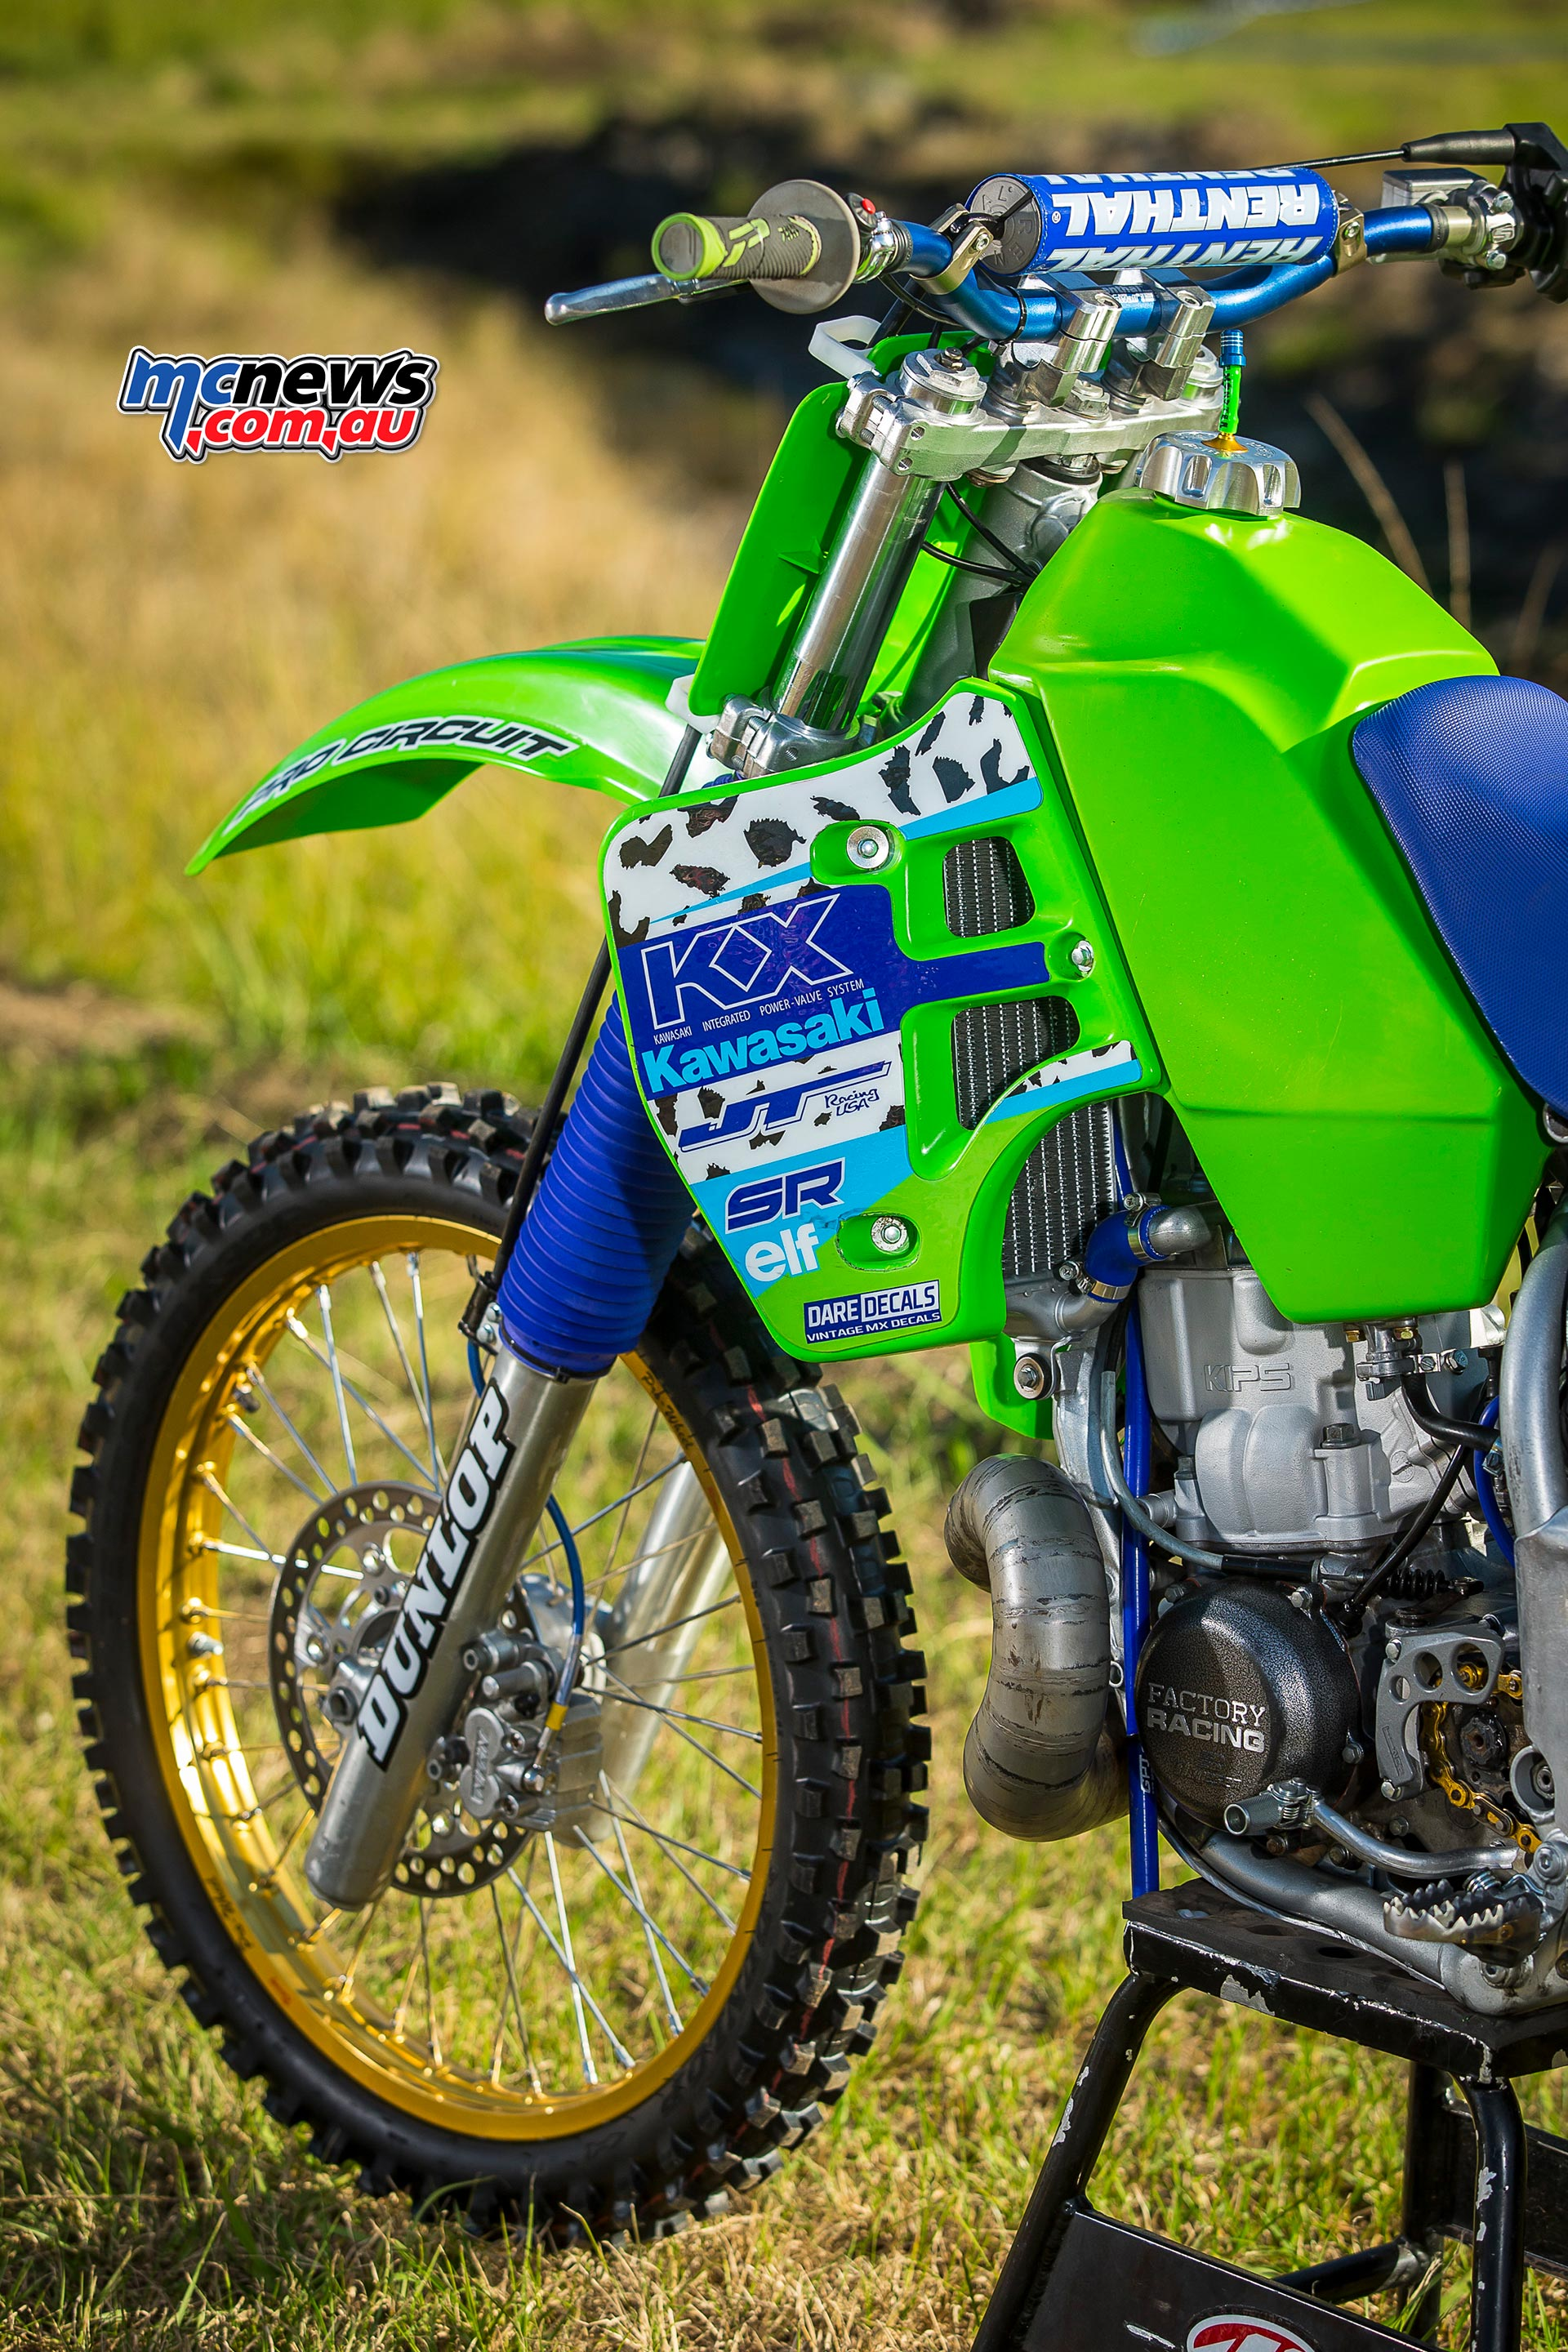 Modified 1989 Kawasaki Kx500 Kx250 Wiring Harness Brad Mustard Image By Greg Smith Theres A Smaller Fuel